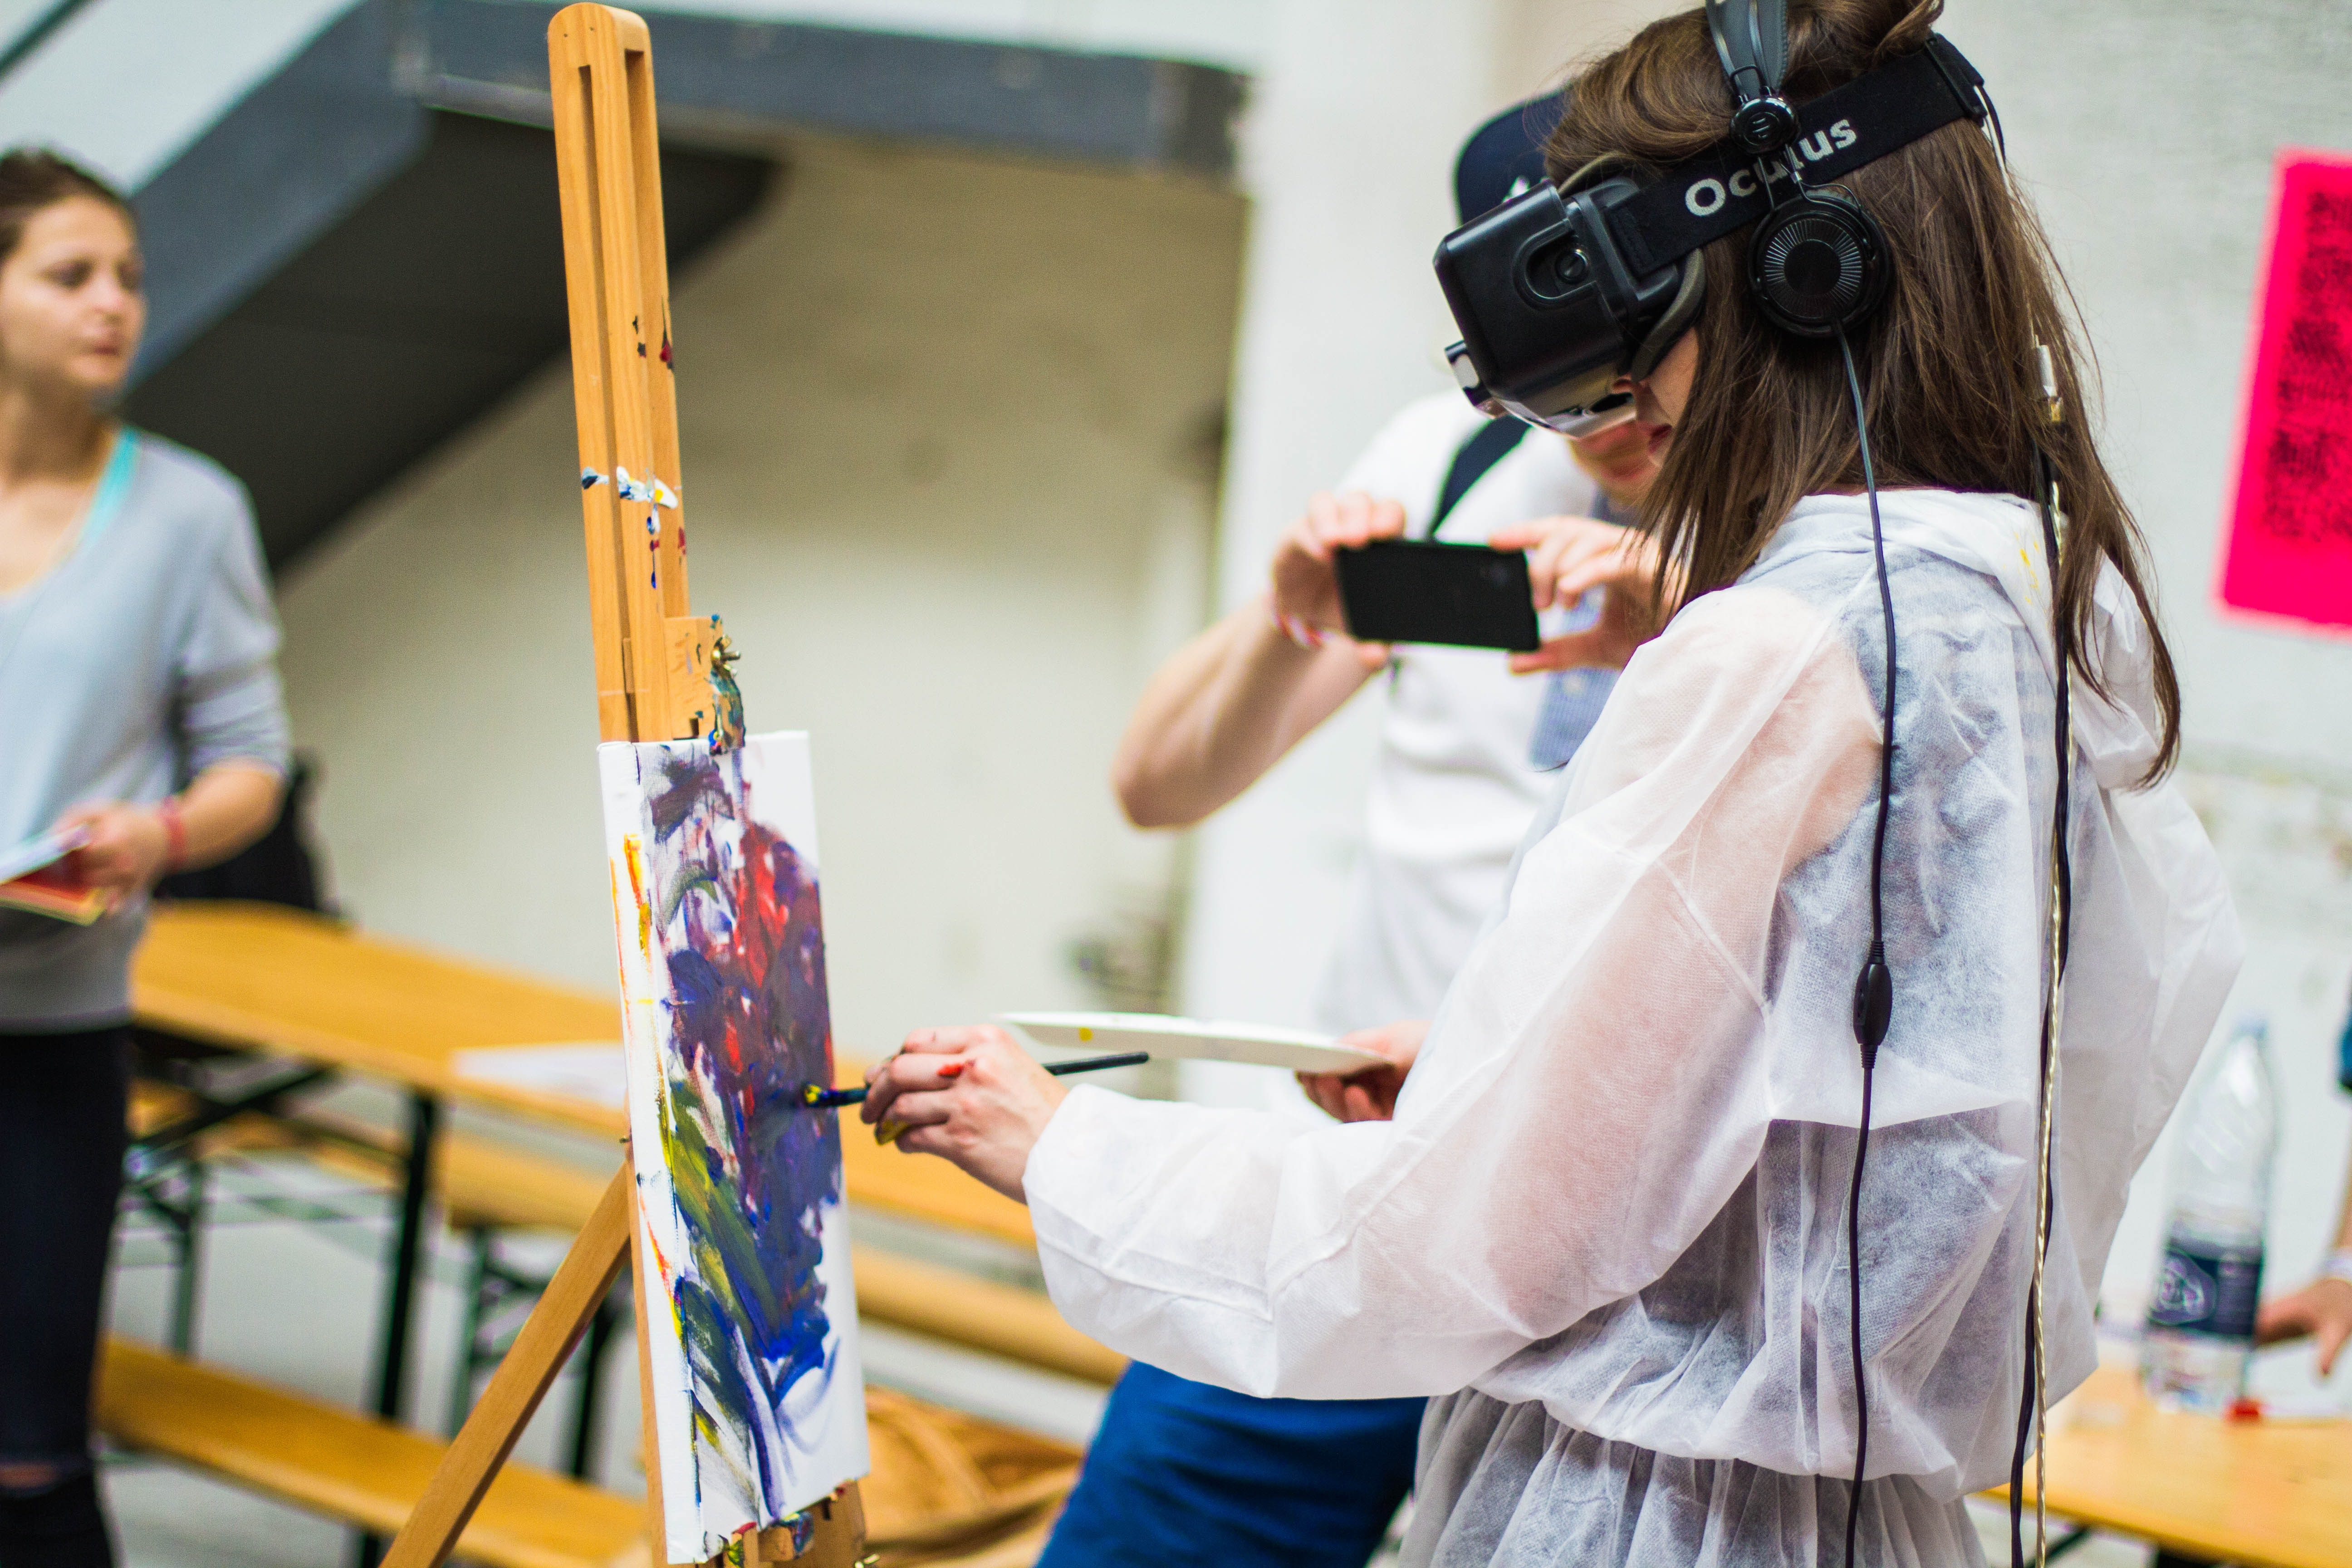 person wearing a vr headset and painting.